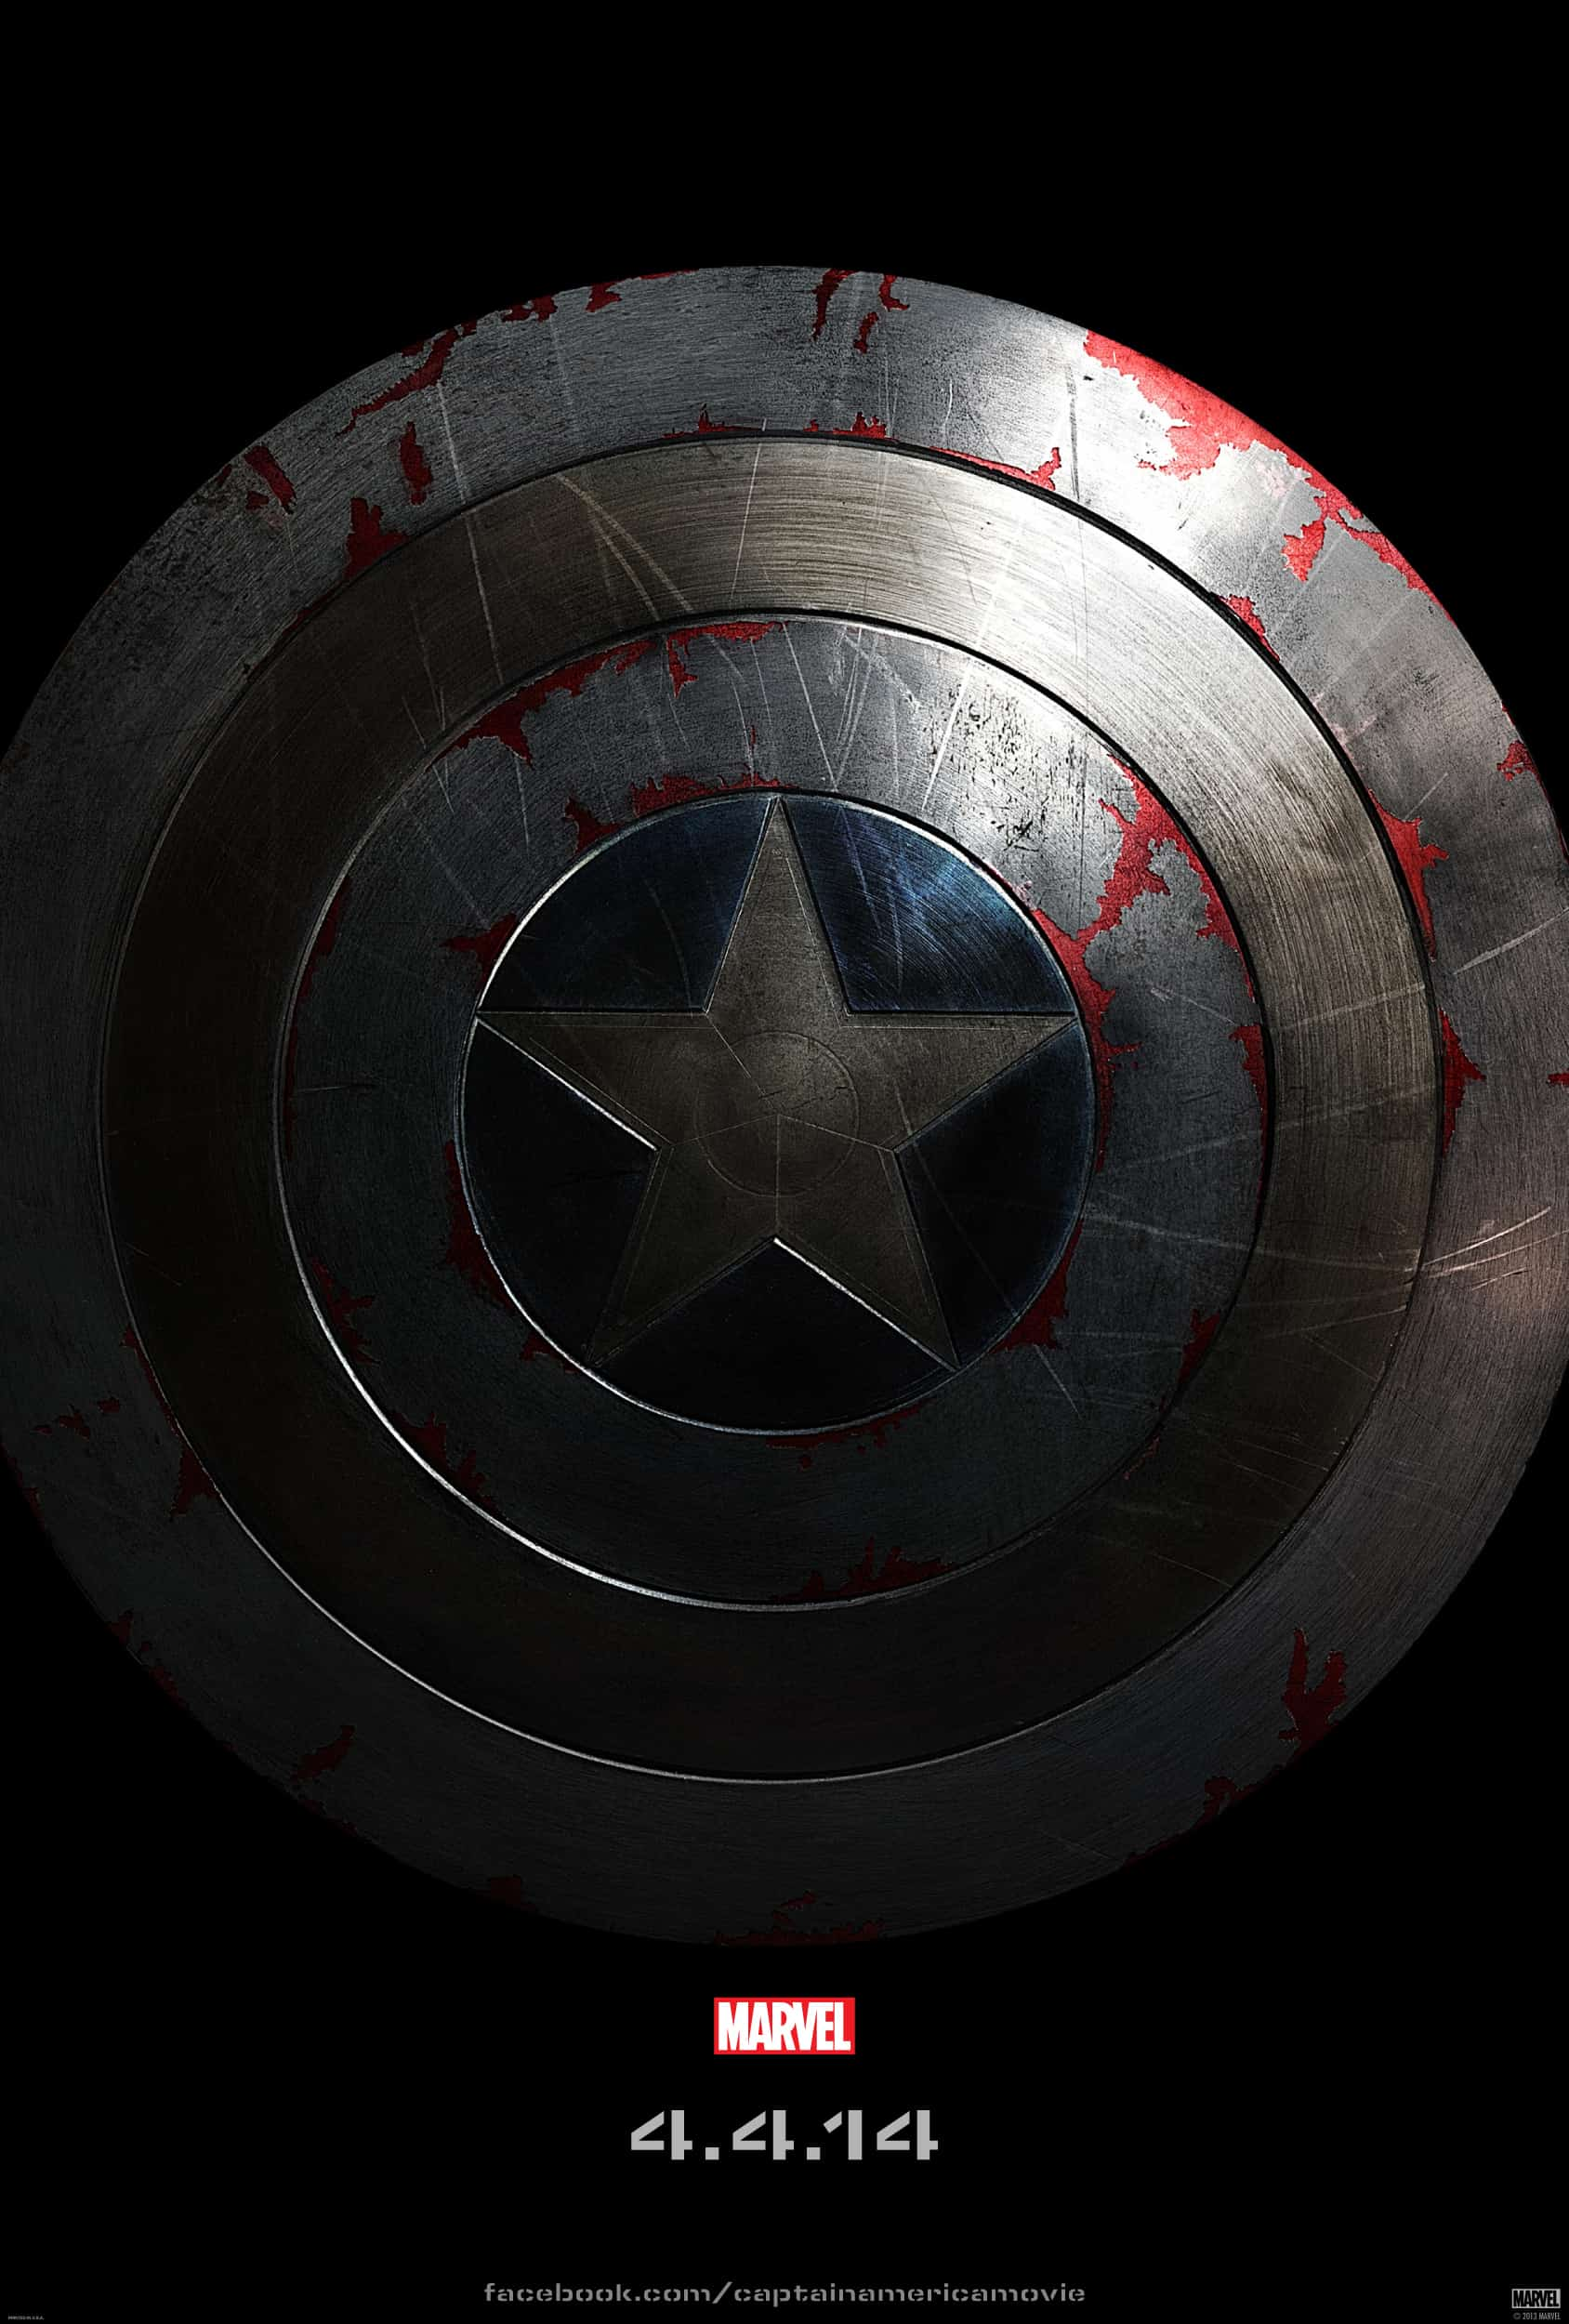 NEW Teaser Poster for Captain America: The Winter Soldier